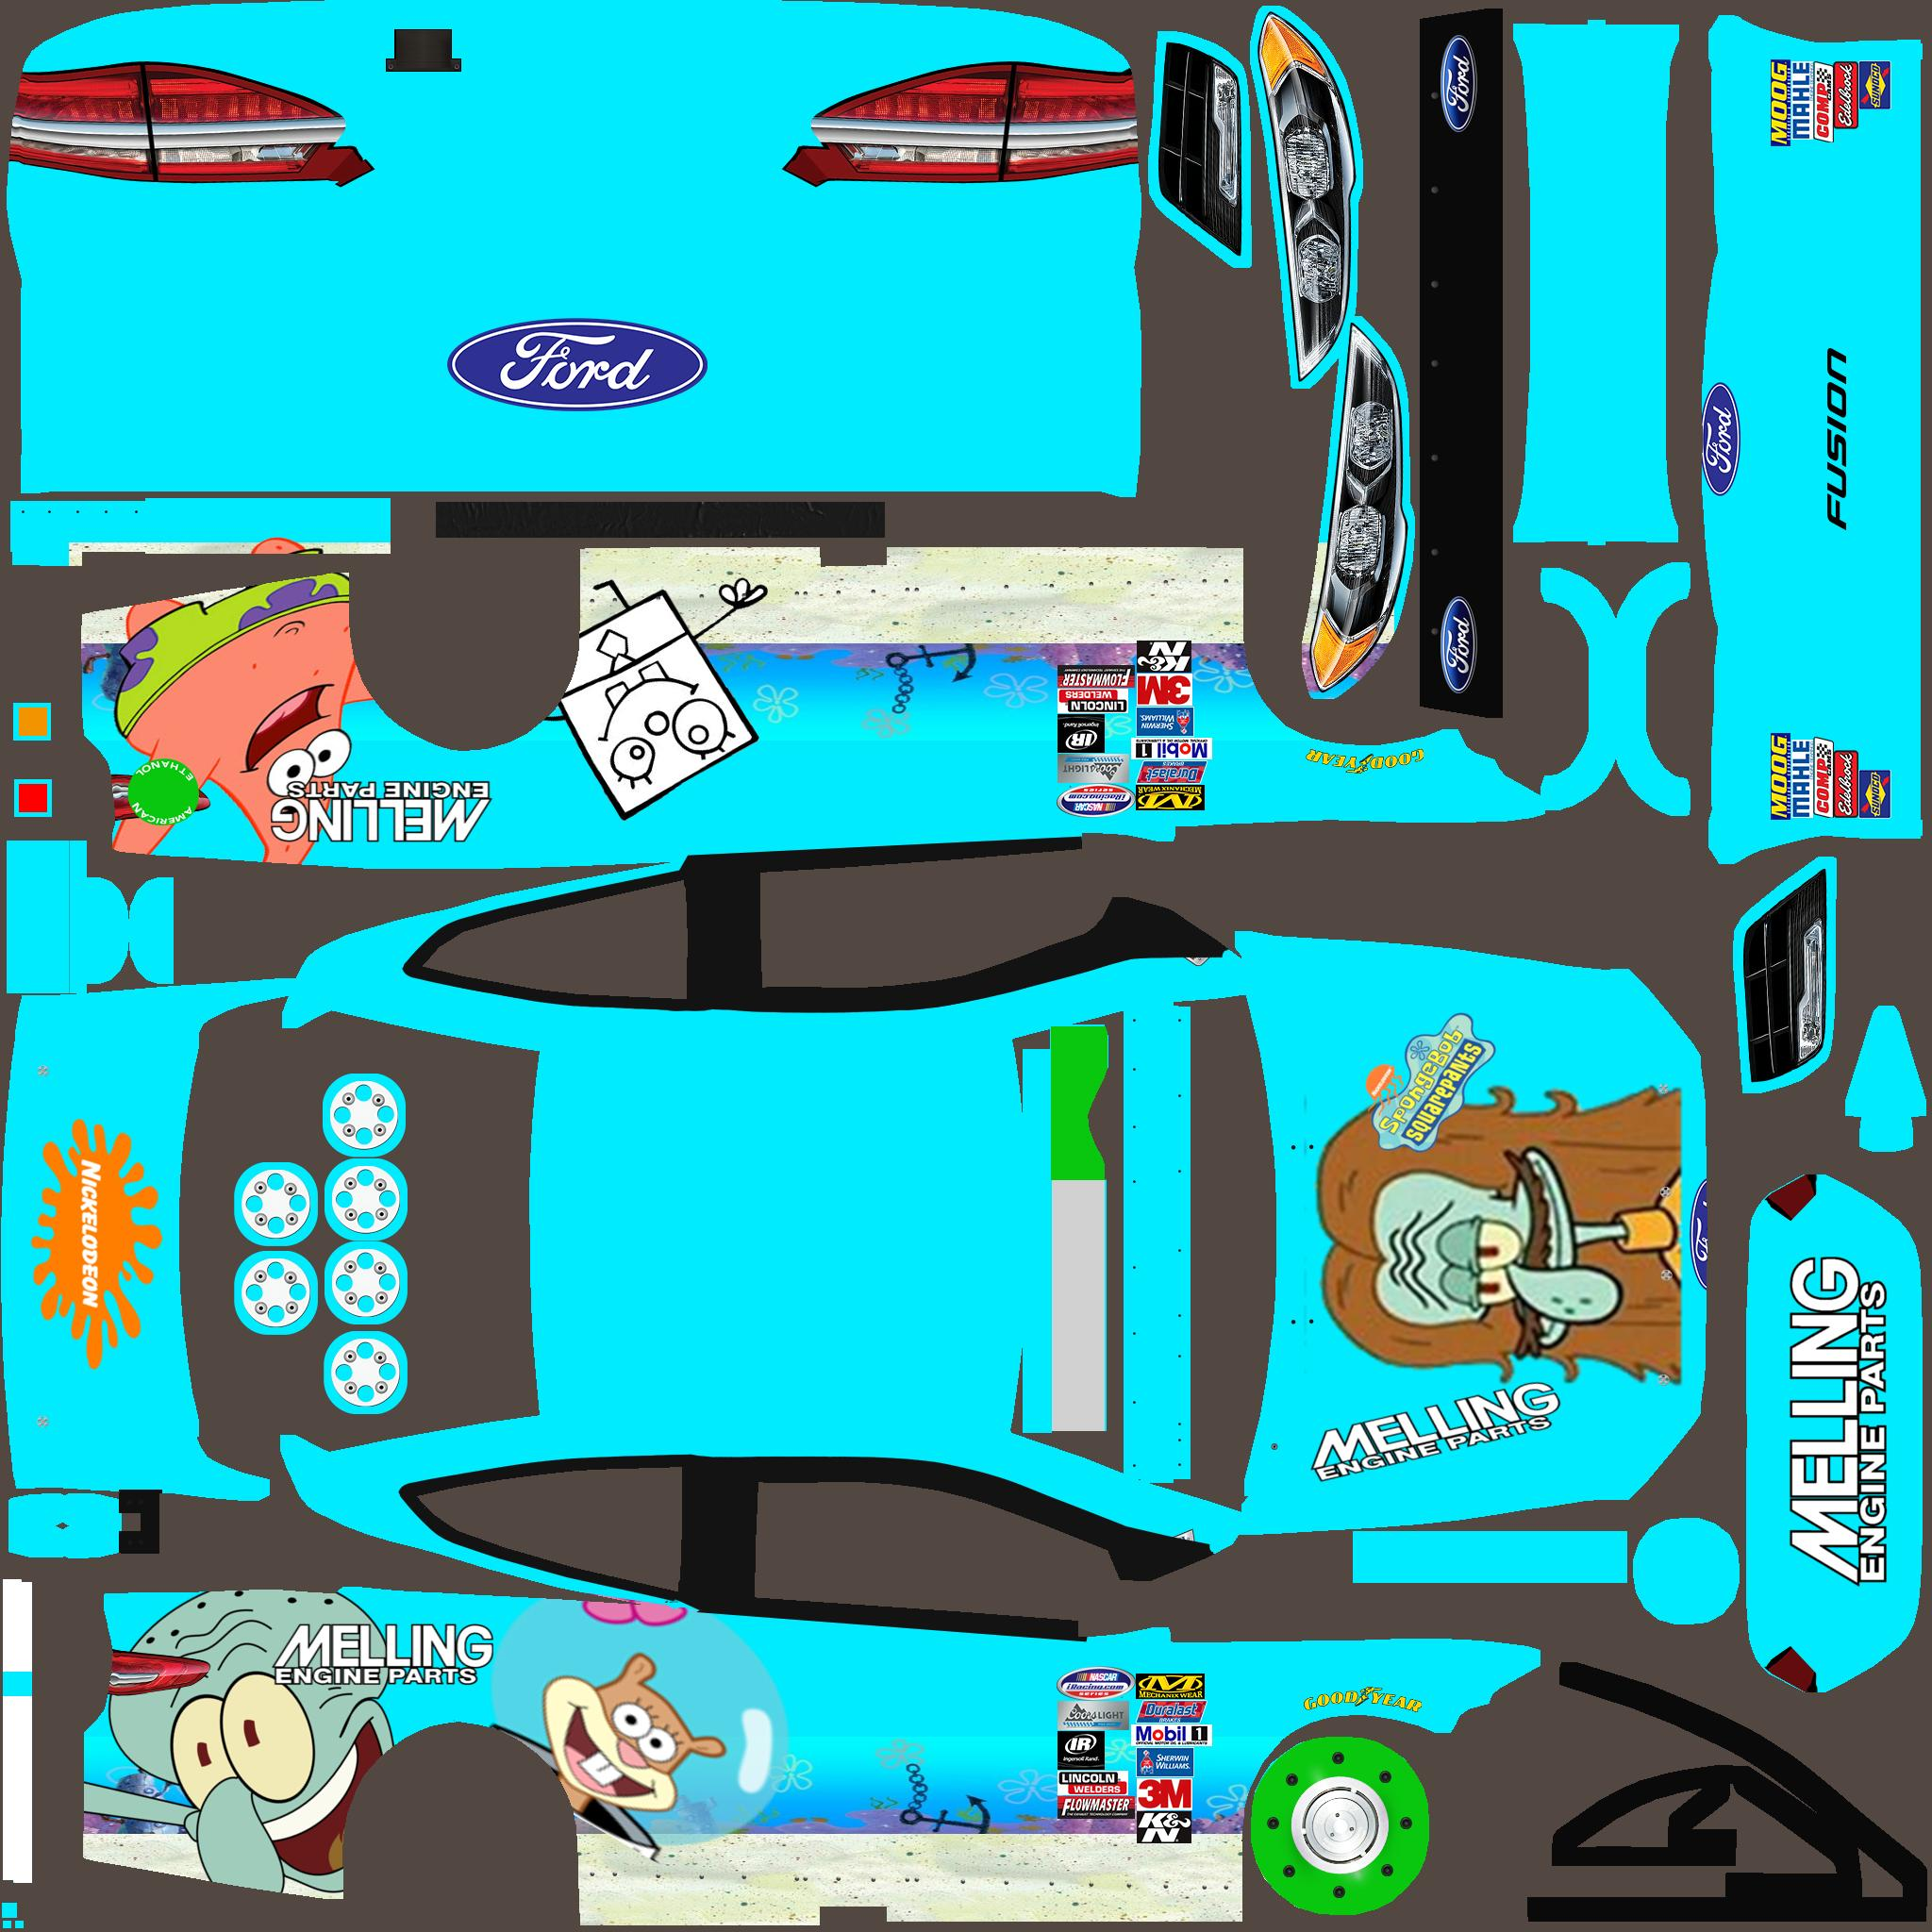 Kelpy G Car By Jace Nelson Trading Paints Salutations my children, let kelpy g guide you through a musical journey and delight your ears with tasty tunes. kelpy g car by jace nelson trading paints